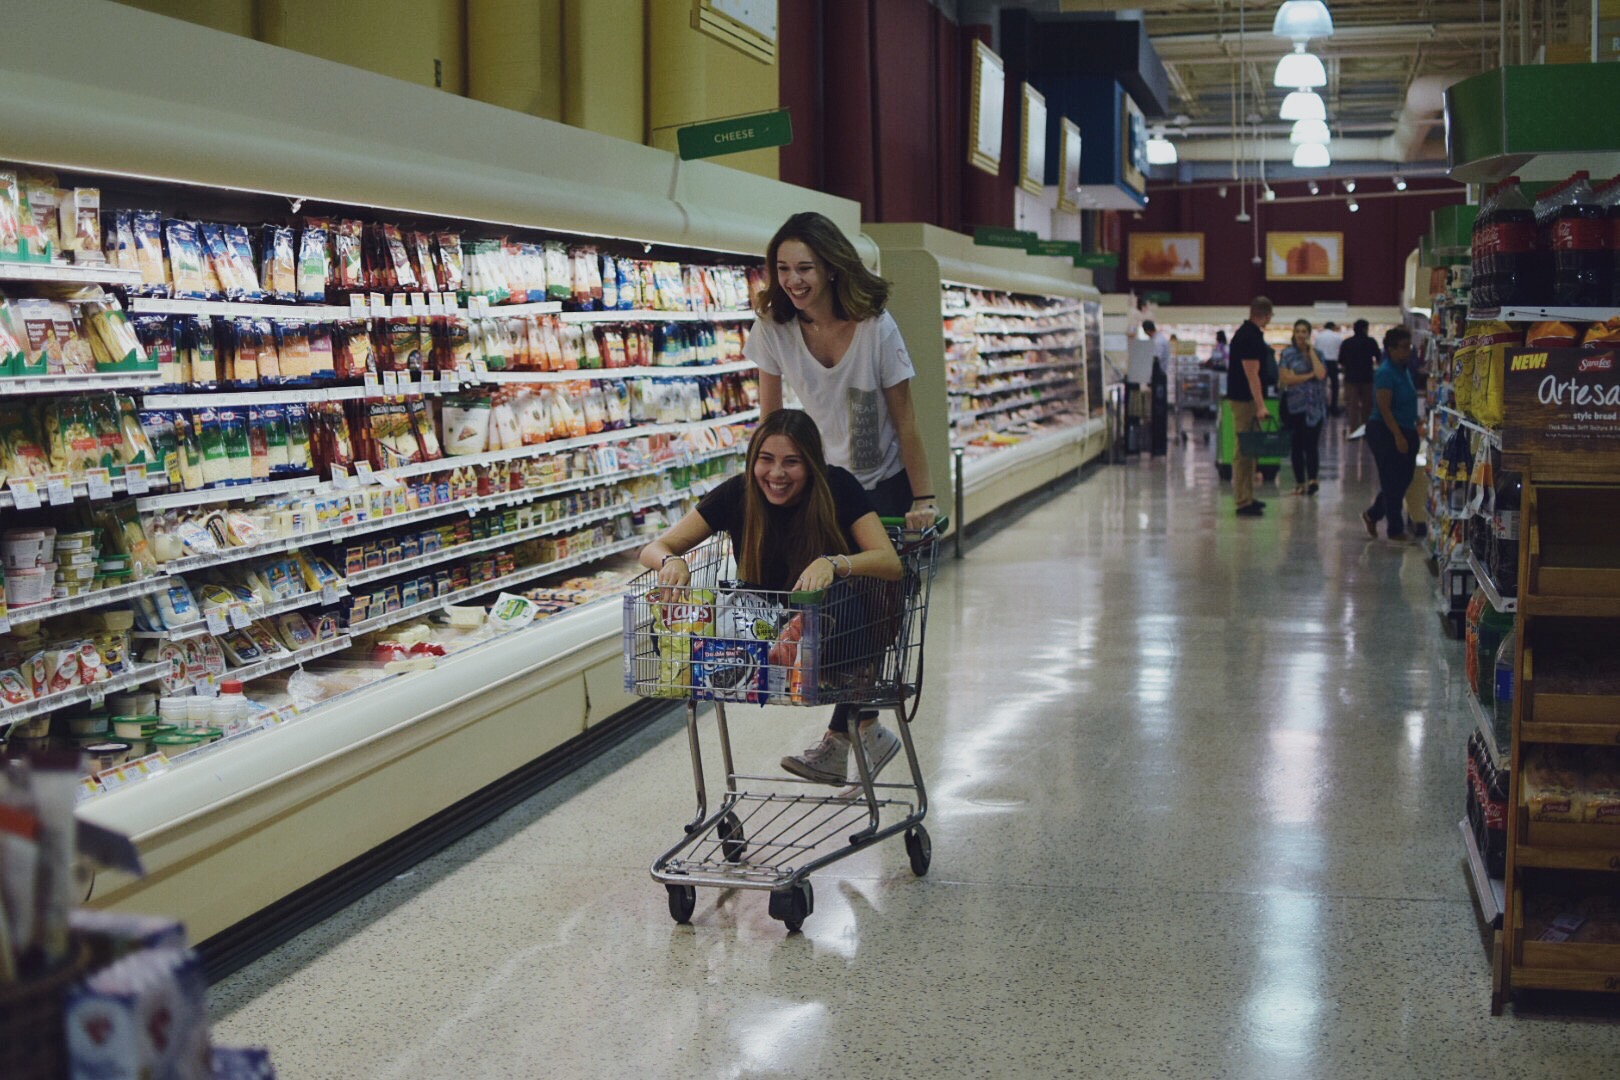 Alexa and I demonstrating how Publix brings out our inner child.